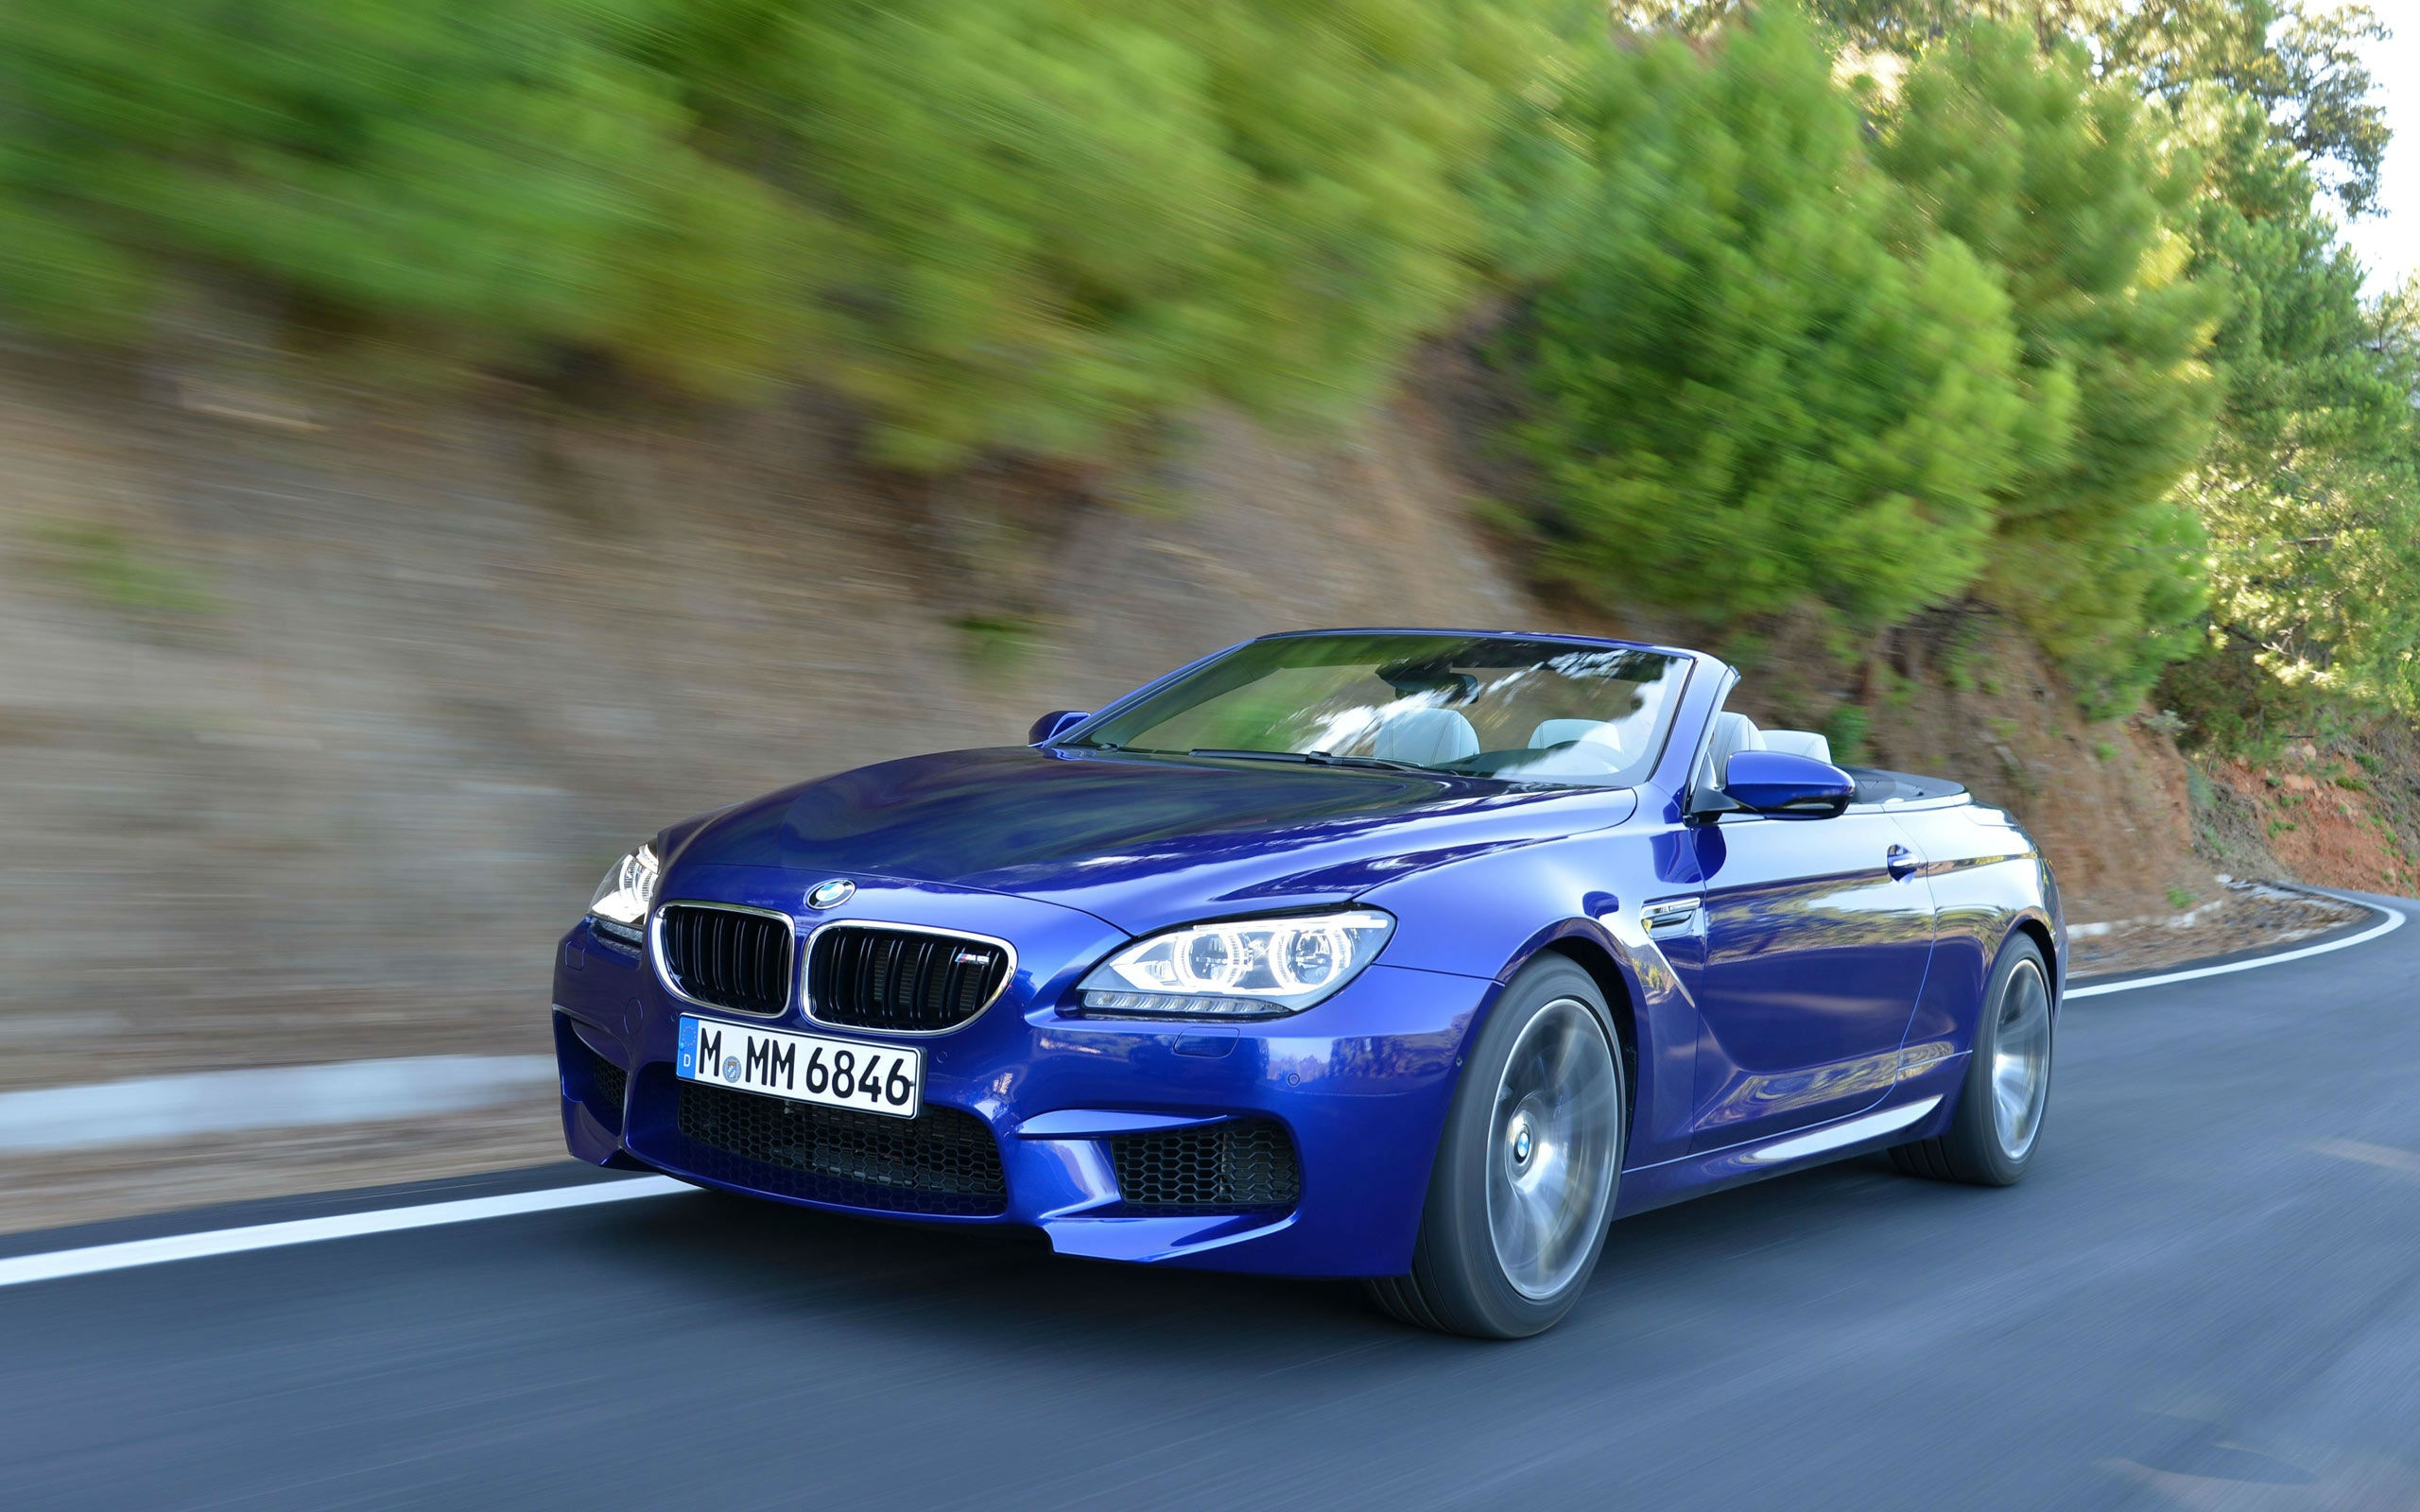 BMW M6 Convertible Blue Car Wallpapers   2560x1600   870180 2560x1600